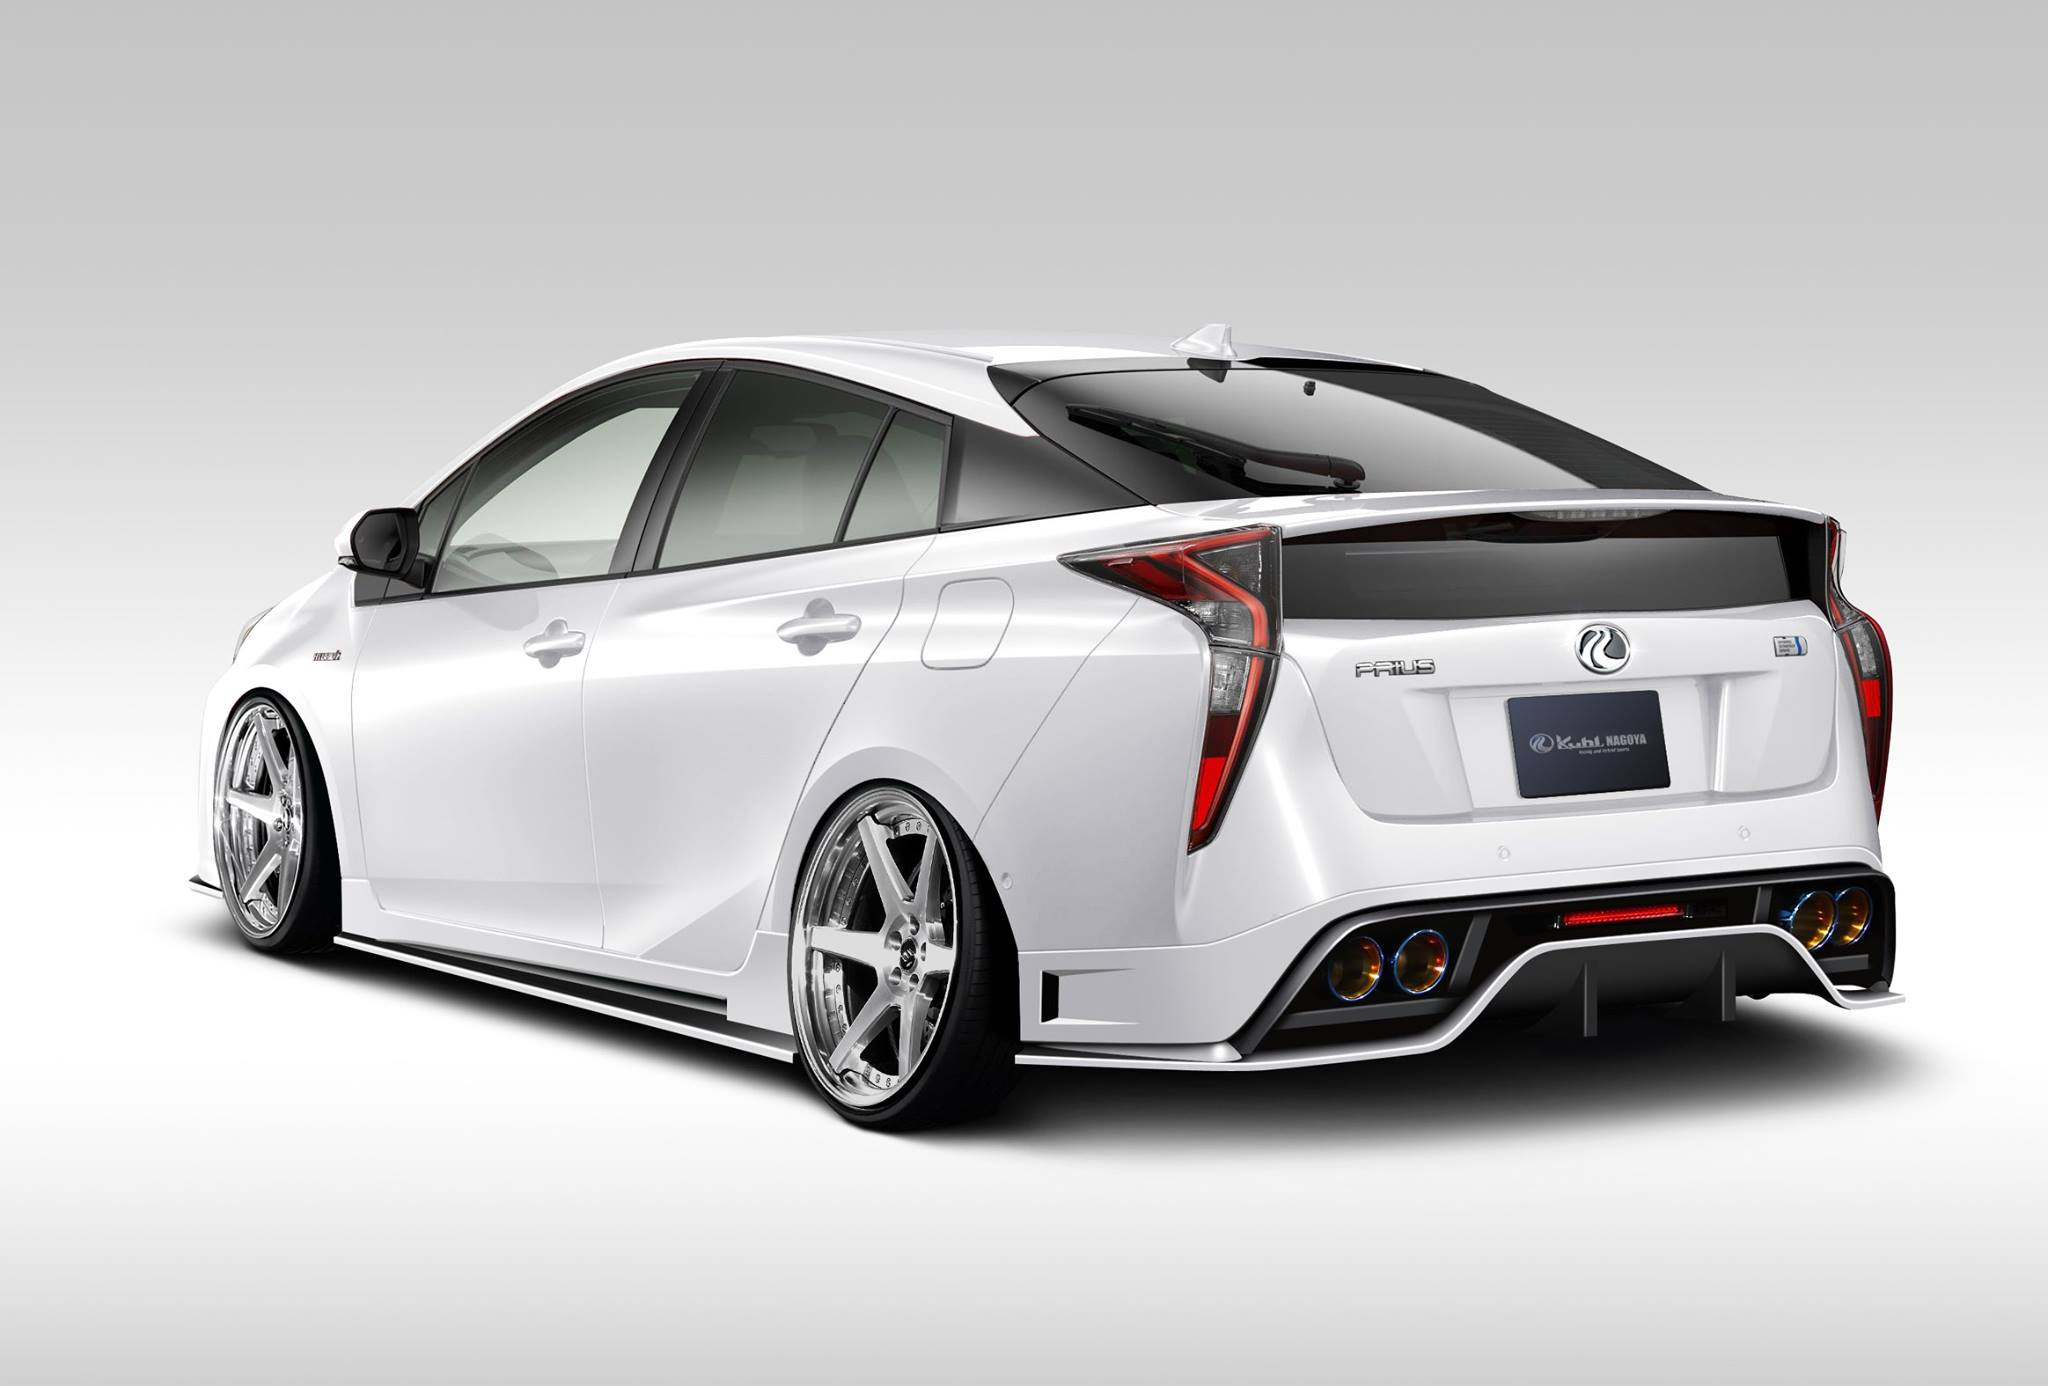 2016 Toyota Prius Getting Hellaflush Body Kit from Kuhl ...